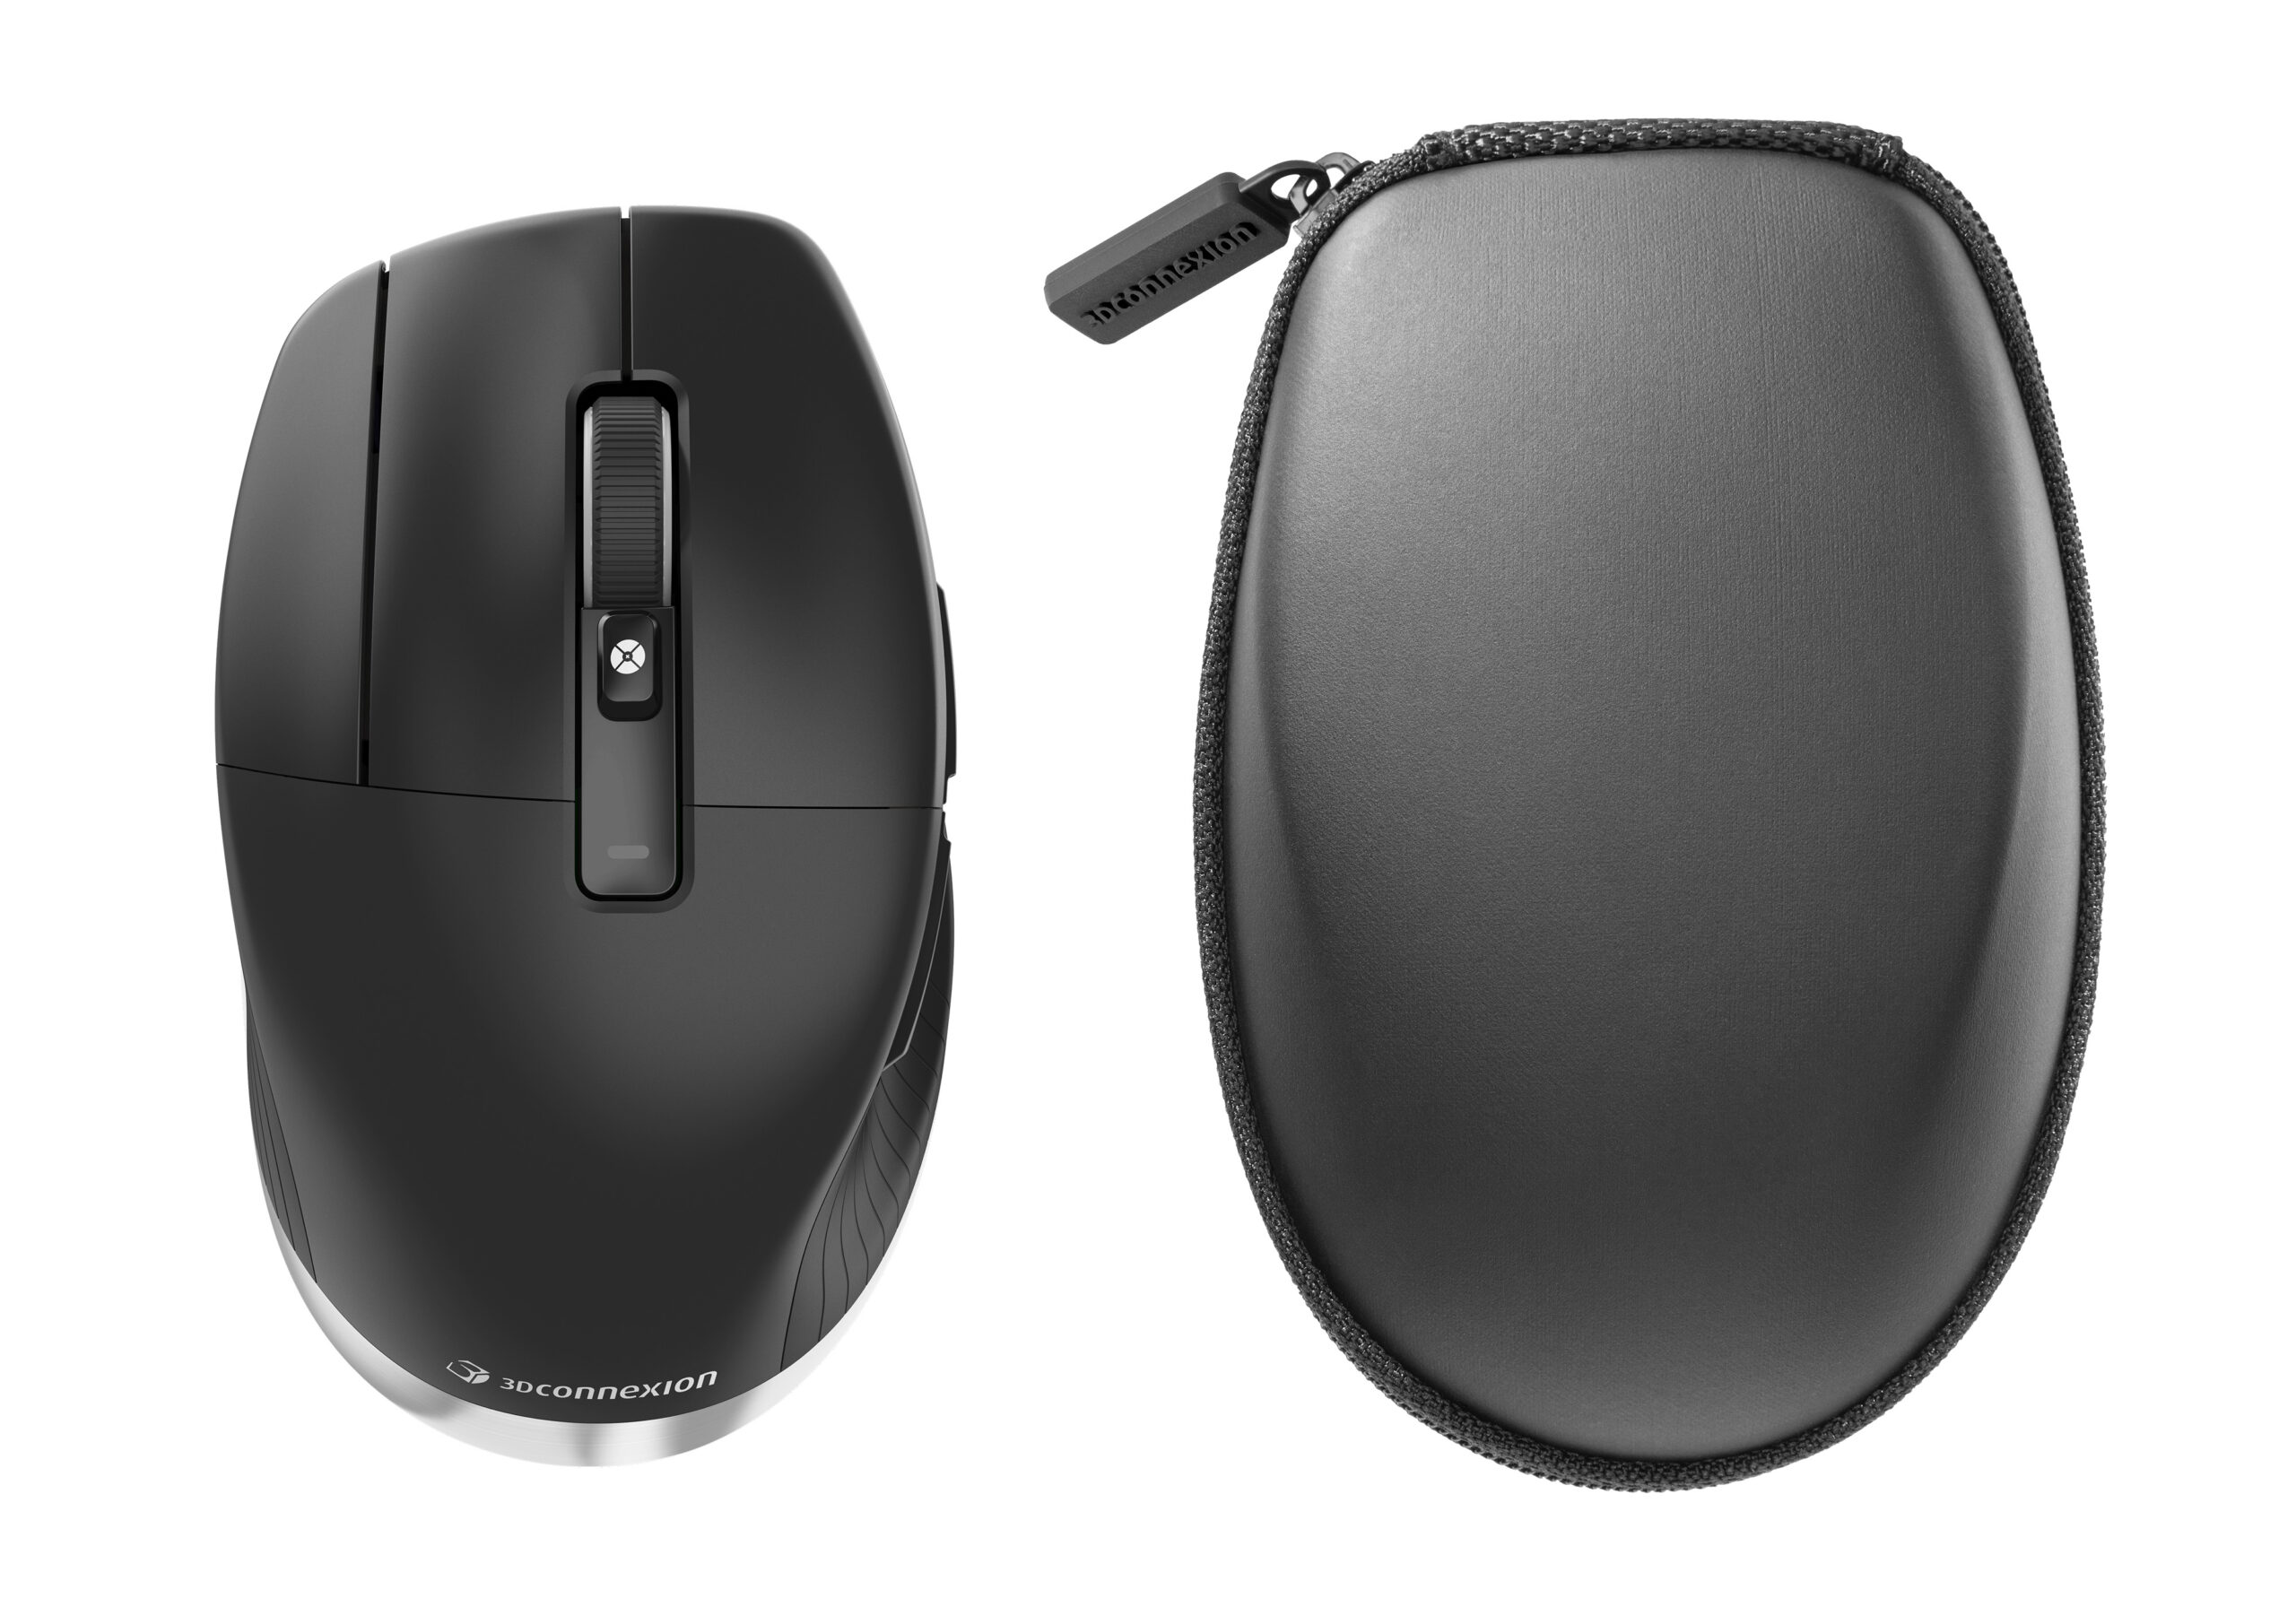 CadMouse Pro Wireless Left by 3D Connexion